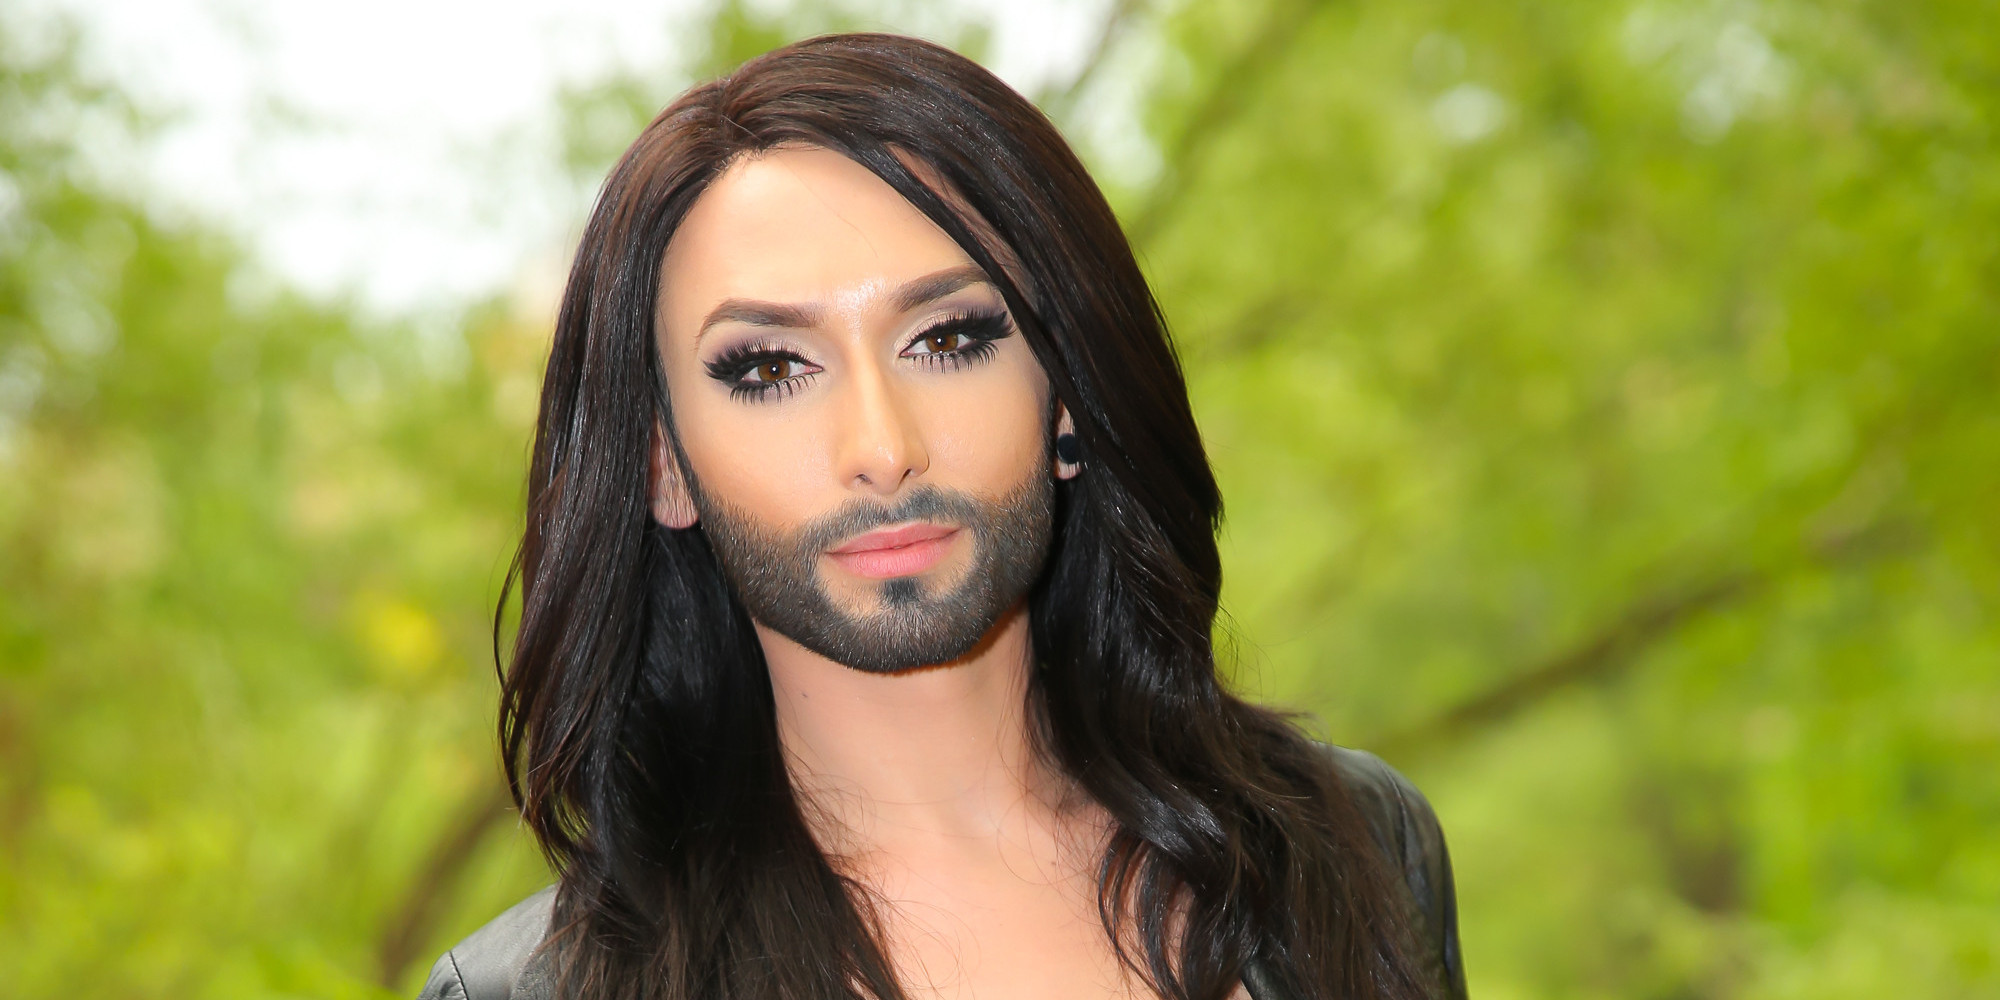 https://i2.wp.com/i.huffpost.com/gen/1771314/images/o-CONCHITA-WURST-facebook.jpg